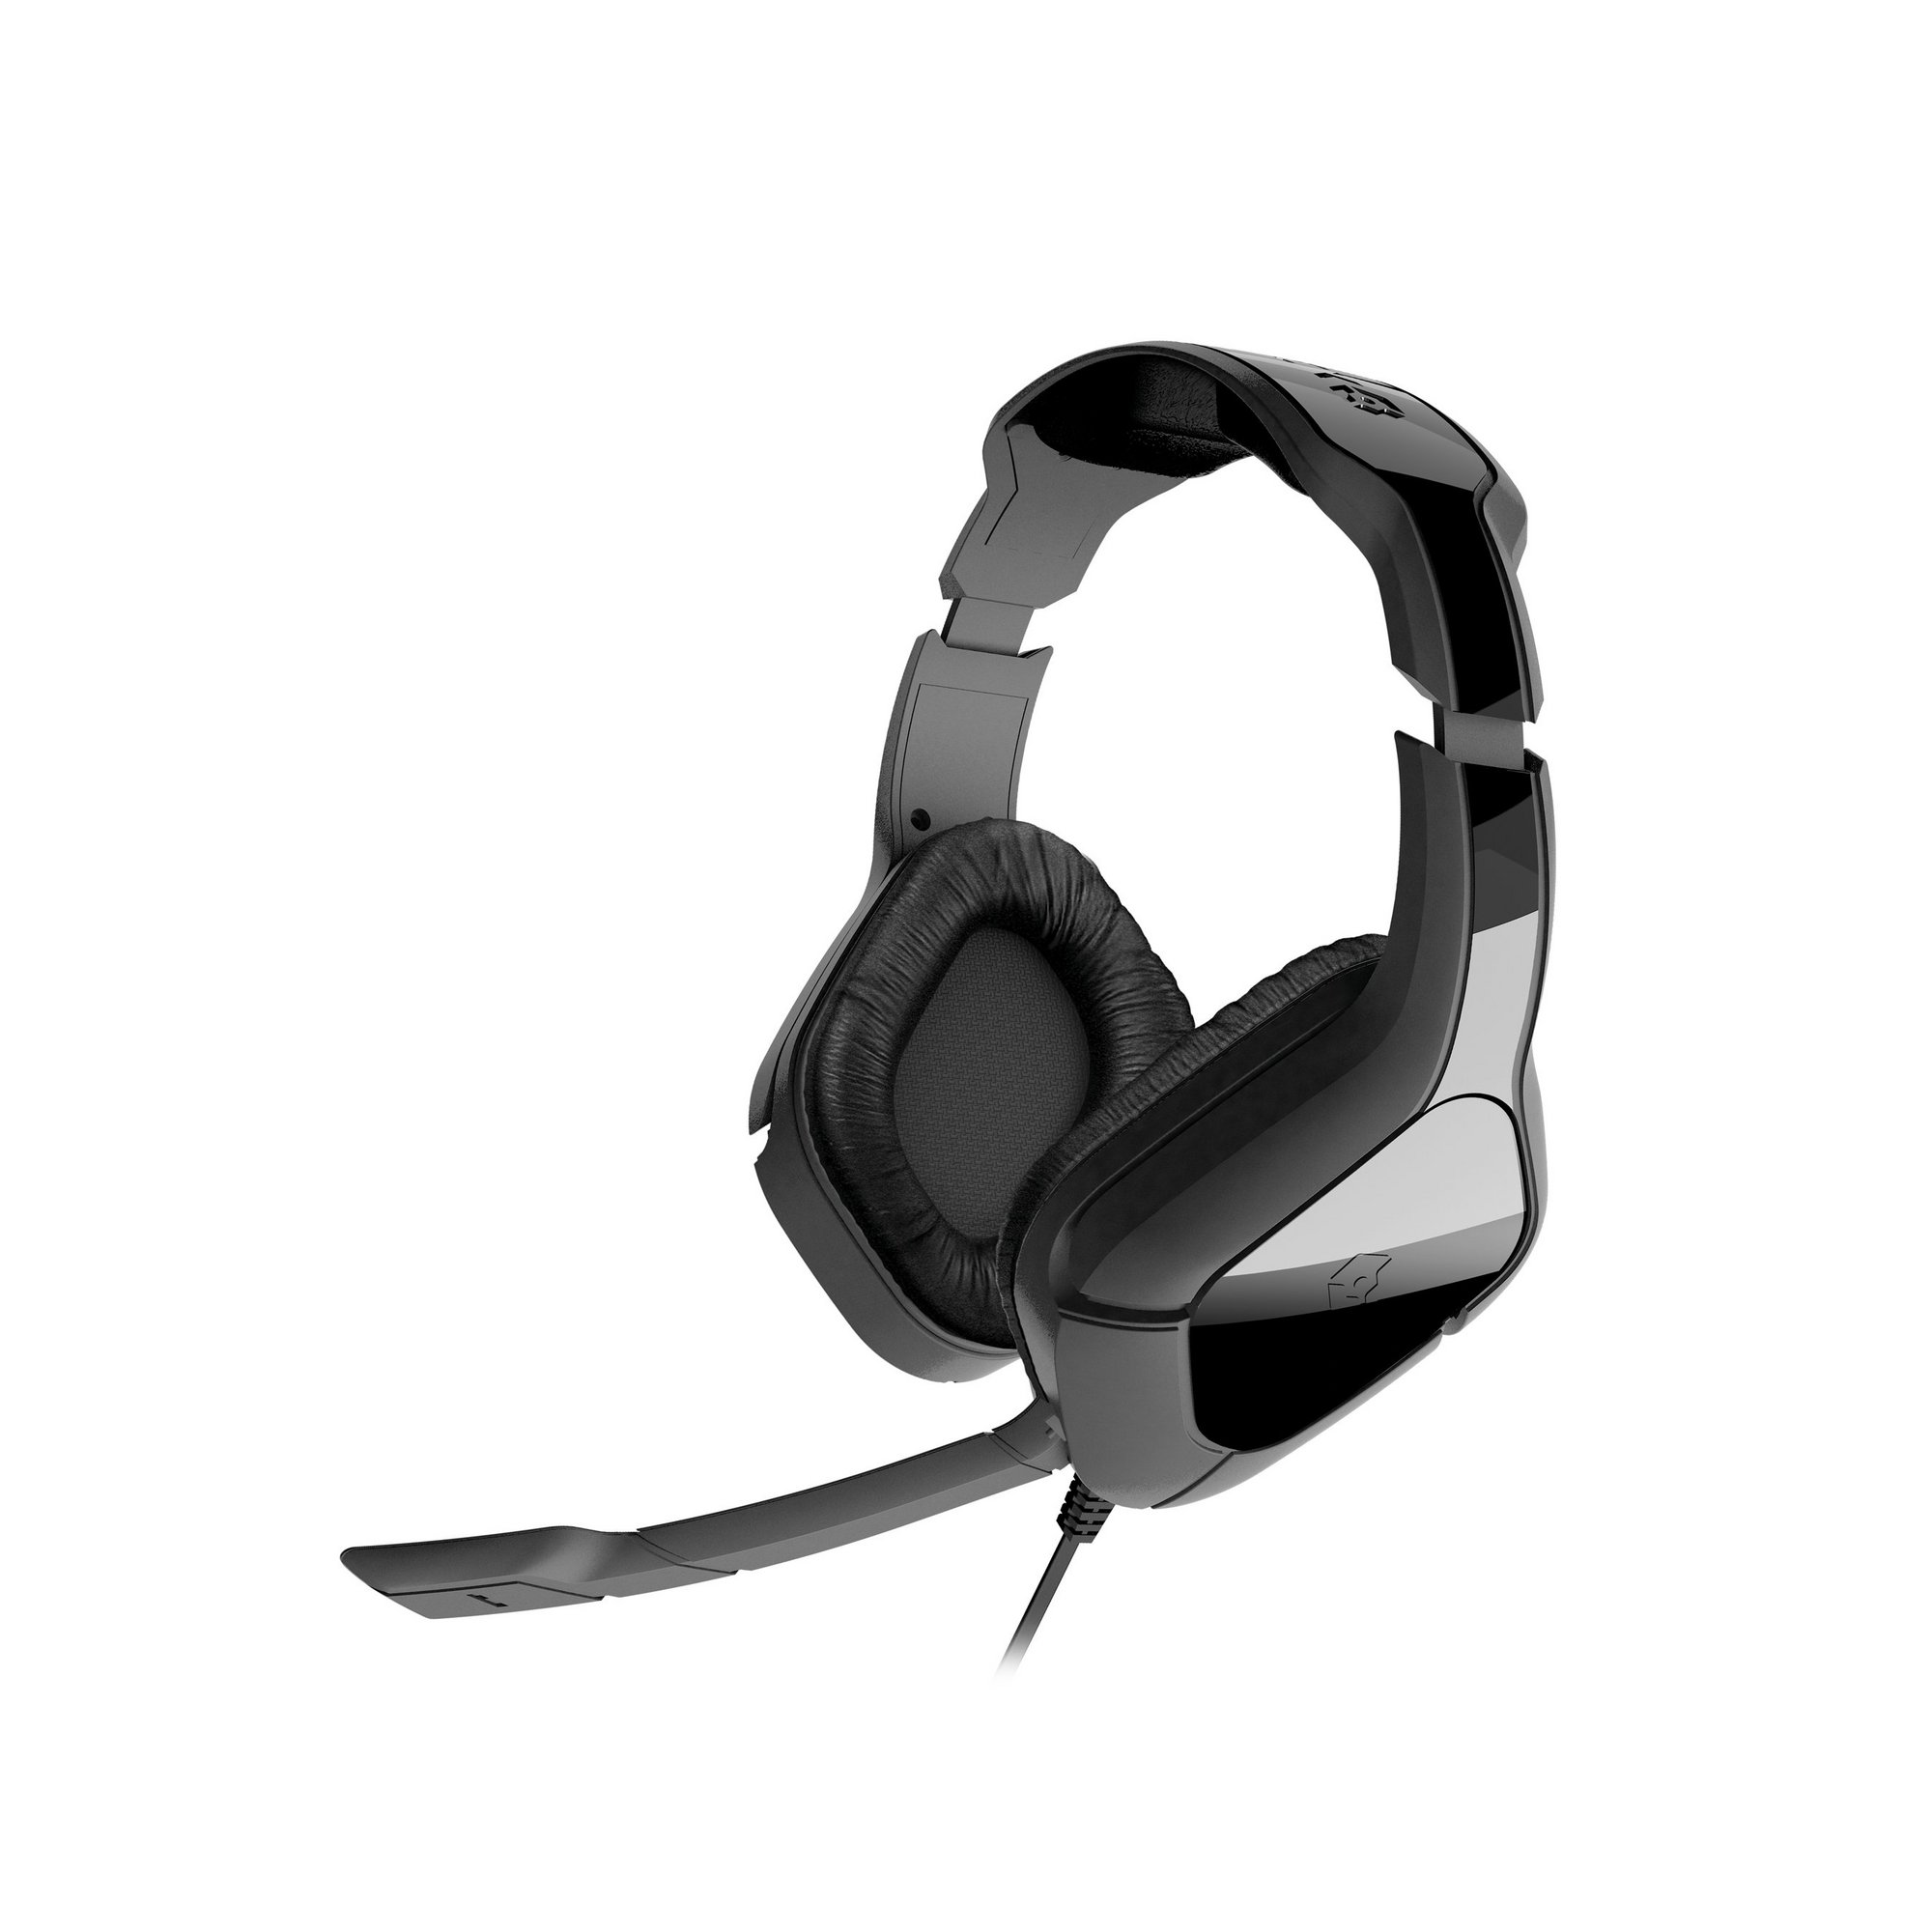 Image of HC-2 Gioteck Plus Wired Stereo Headset